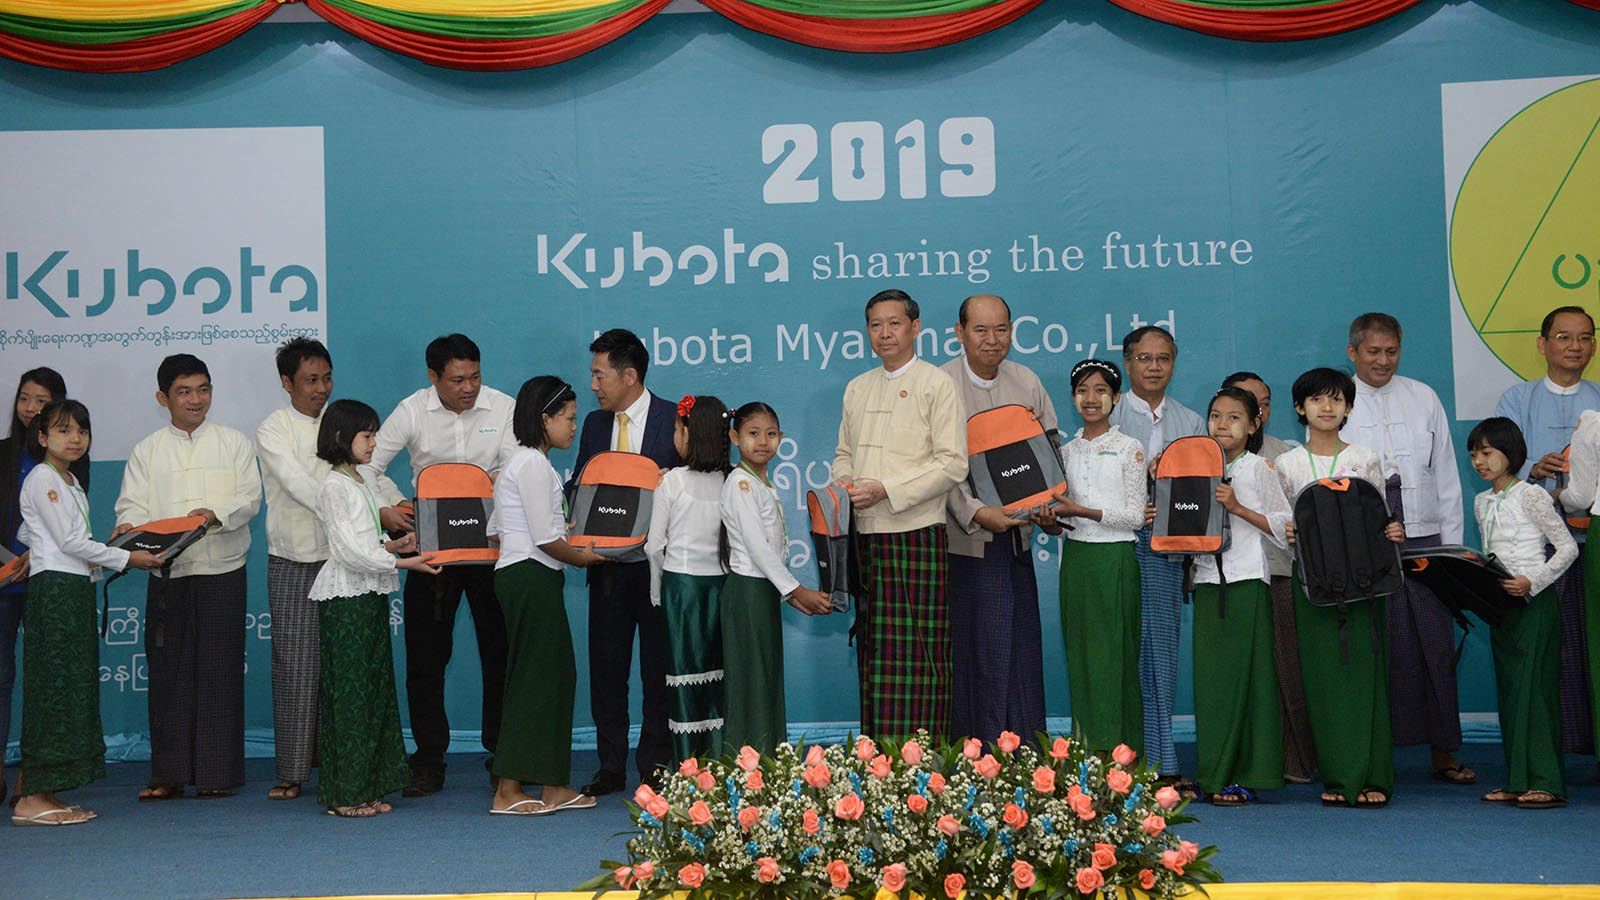 Union Minister Dr Myo Thein Gyi and Japanese KUBOTA company representatives presents backpacks and to students at the ceremony at the Ministry of Education in Nay Pyi Taw yesterday.Photo: MNA